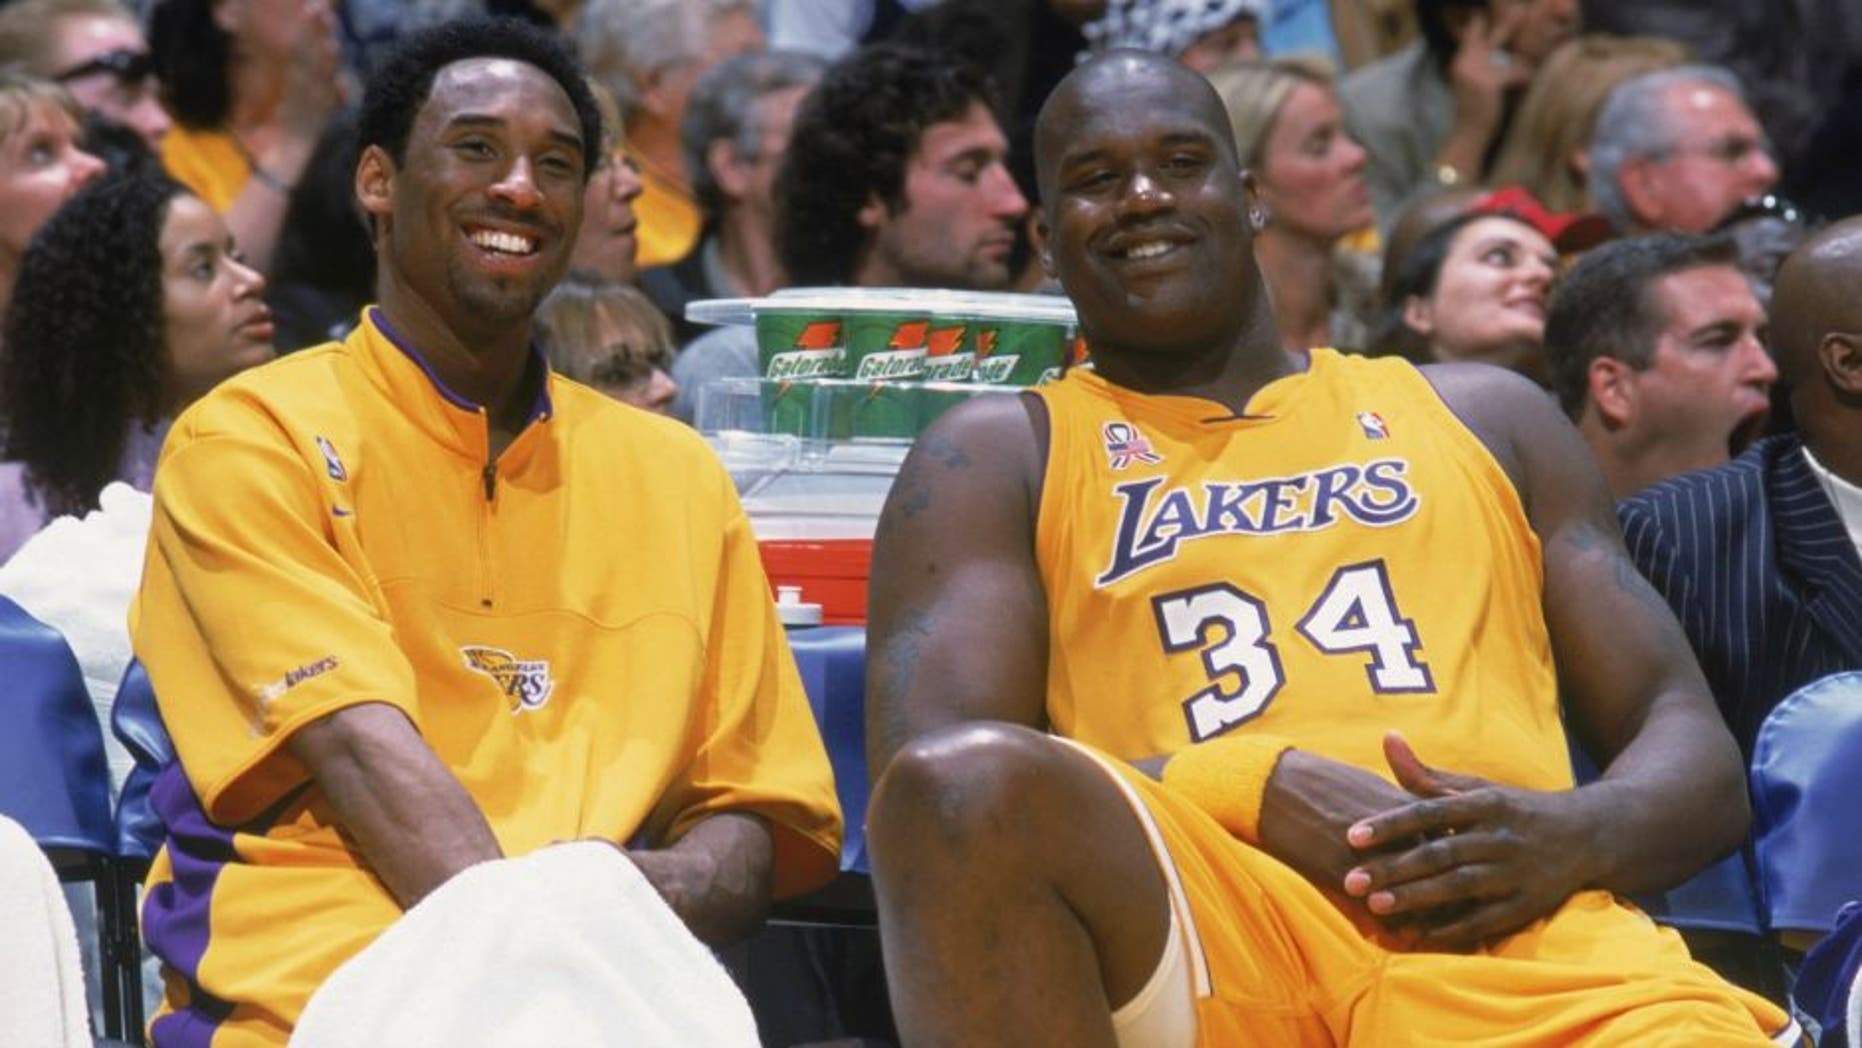 17 Apr 2002: Kobe Bryant #8 of the Los Angeles Lakers talks with his teammate, Shaquille O''Neal #34, during the NBA game against the Sacramento Kings at the Staples Center in Los Angeles, California. The Lakers won, 109-95.  NOTE TO USER: User expressly acknowledges and agrees that, by downloading and/or using this Photograph, User is consenting to the terms and conditions of the Getty Images License Agreement.  Mandatory copyright notice: Copyright 2002 NBAE  Mandatory Credit: Andrew D Bernstein/NBAE/Getty Images